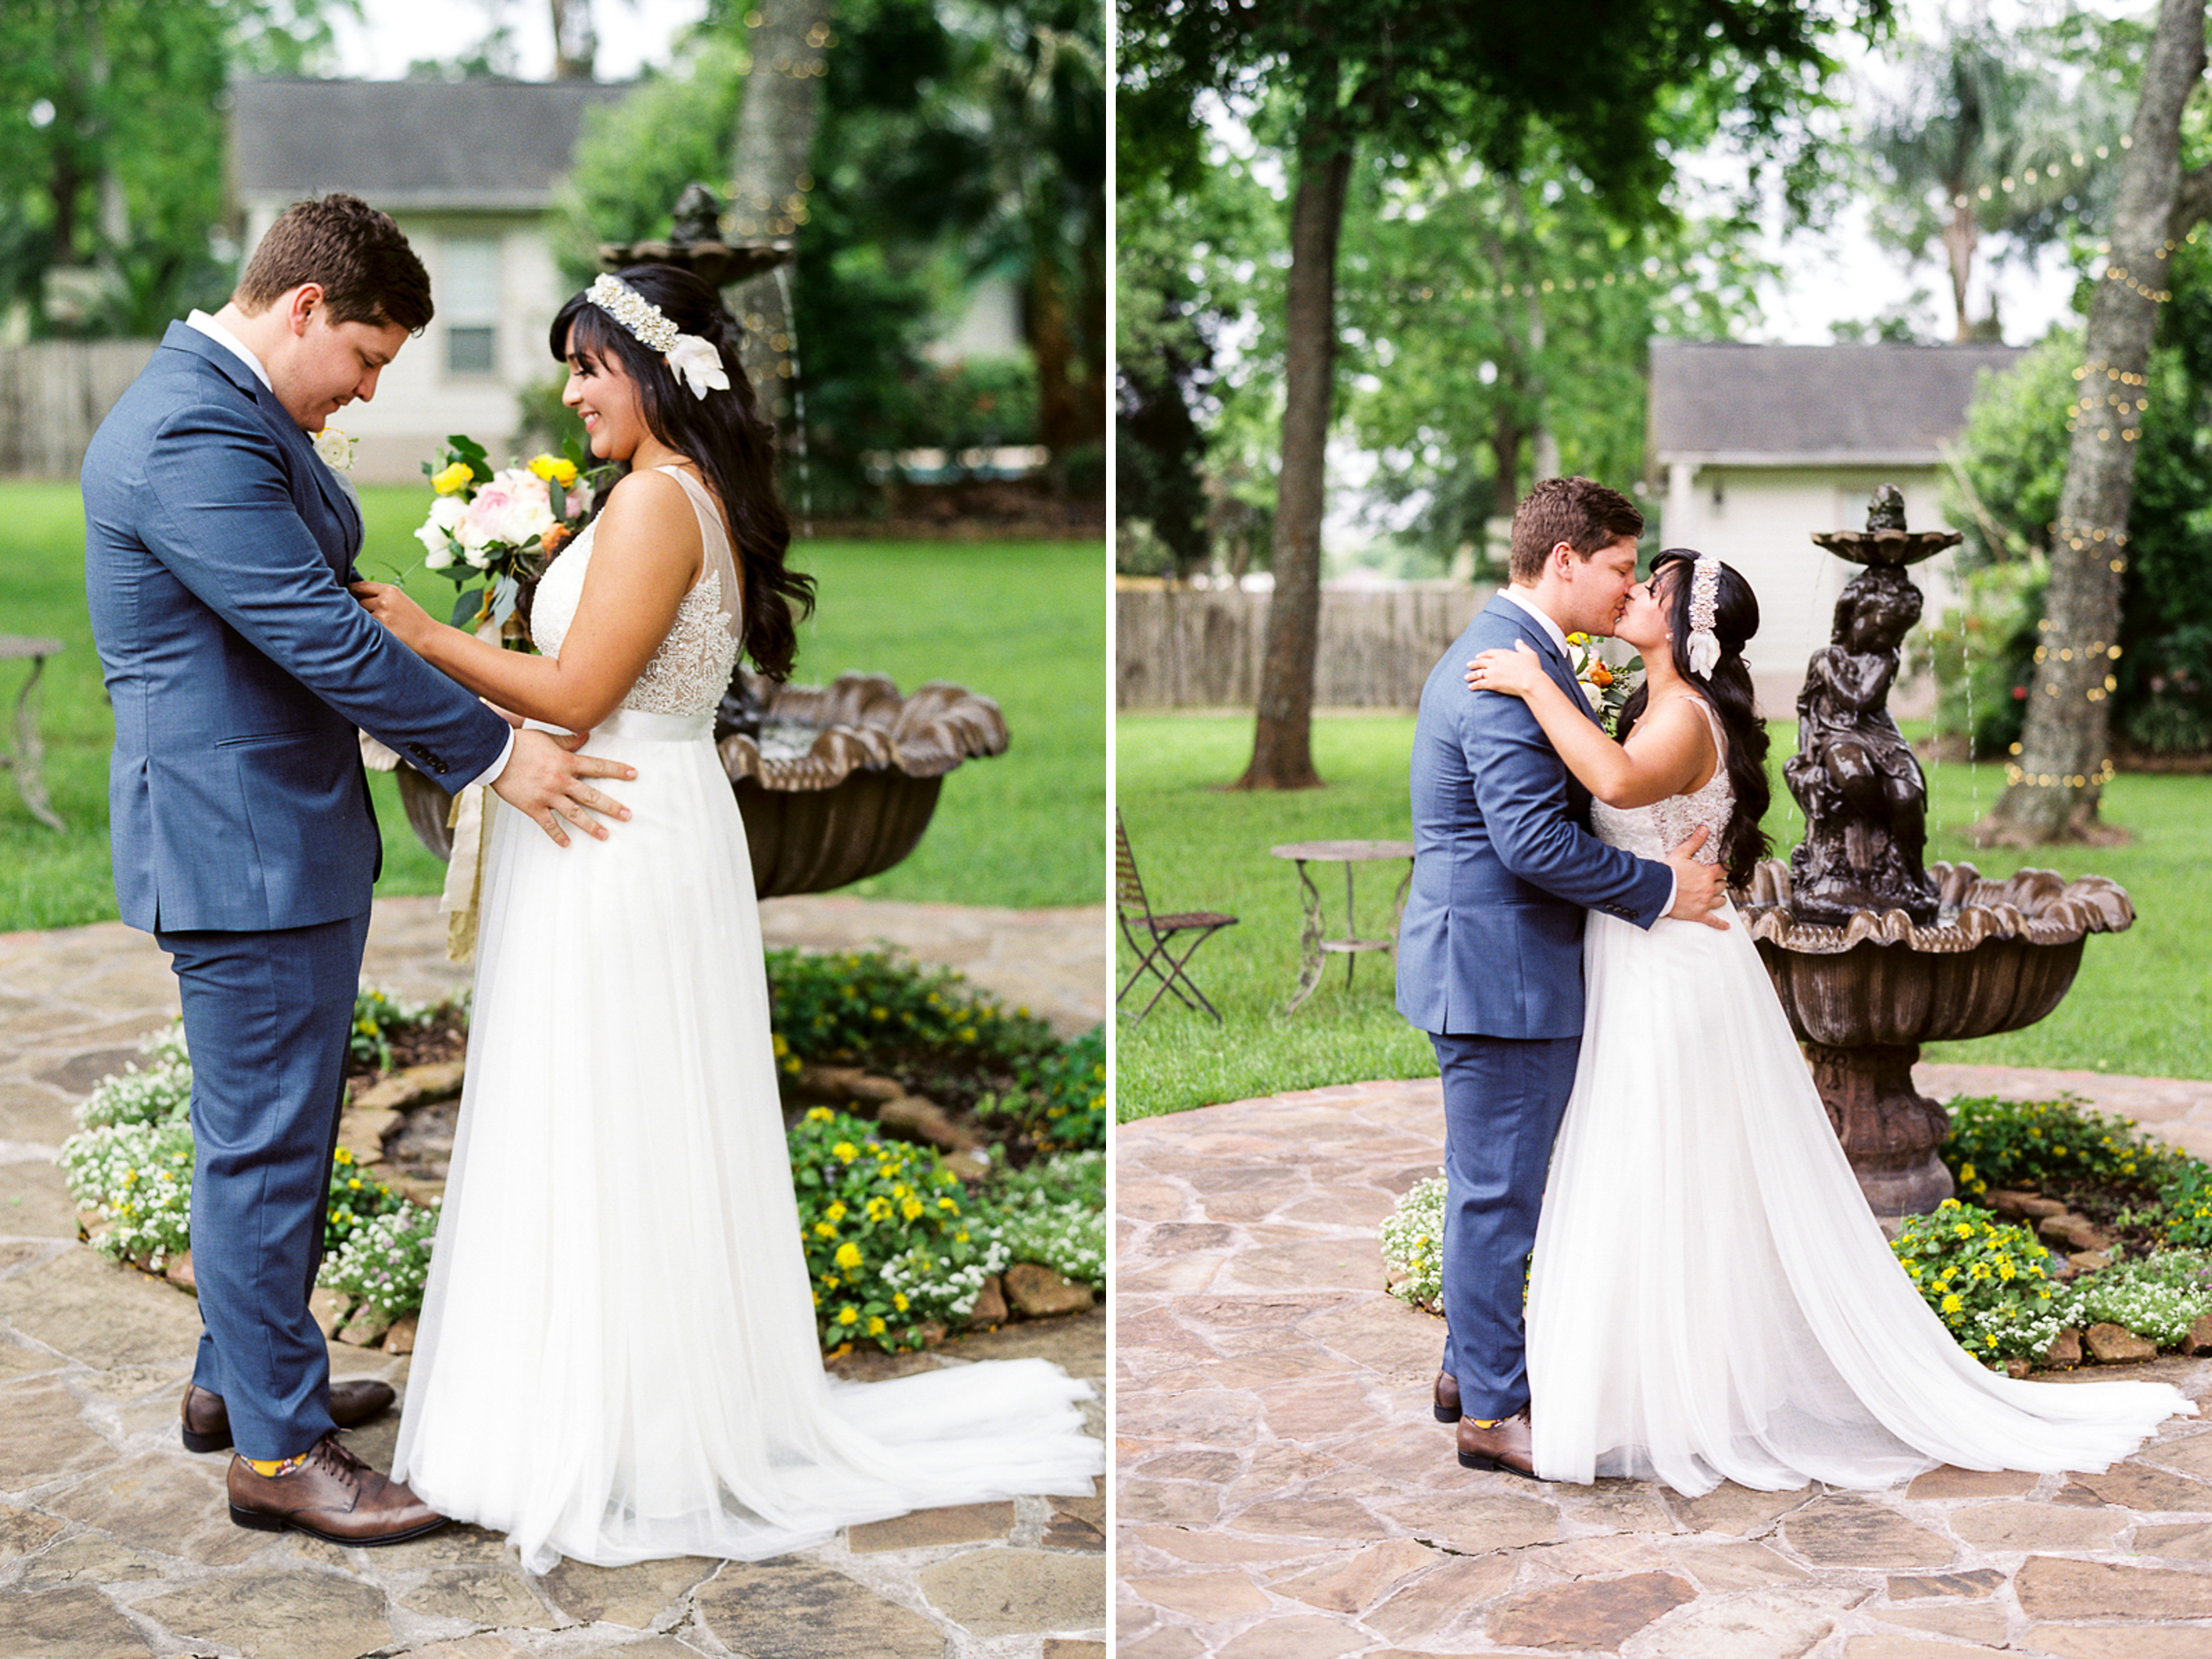 Dana Fernandez Photography Houston Texas Destination Photographer Film Ruffled Blog Wedding Bridal First Look Featured Photography Oak Tree Manor Houston-21.jpg